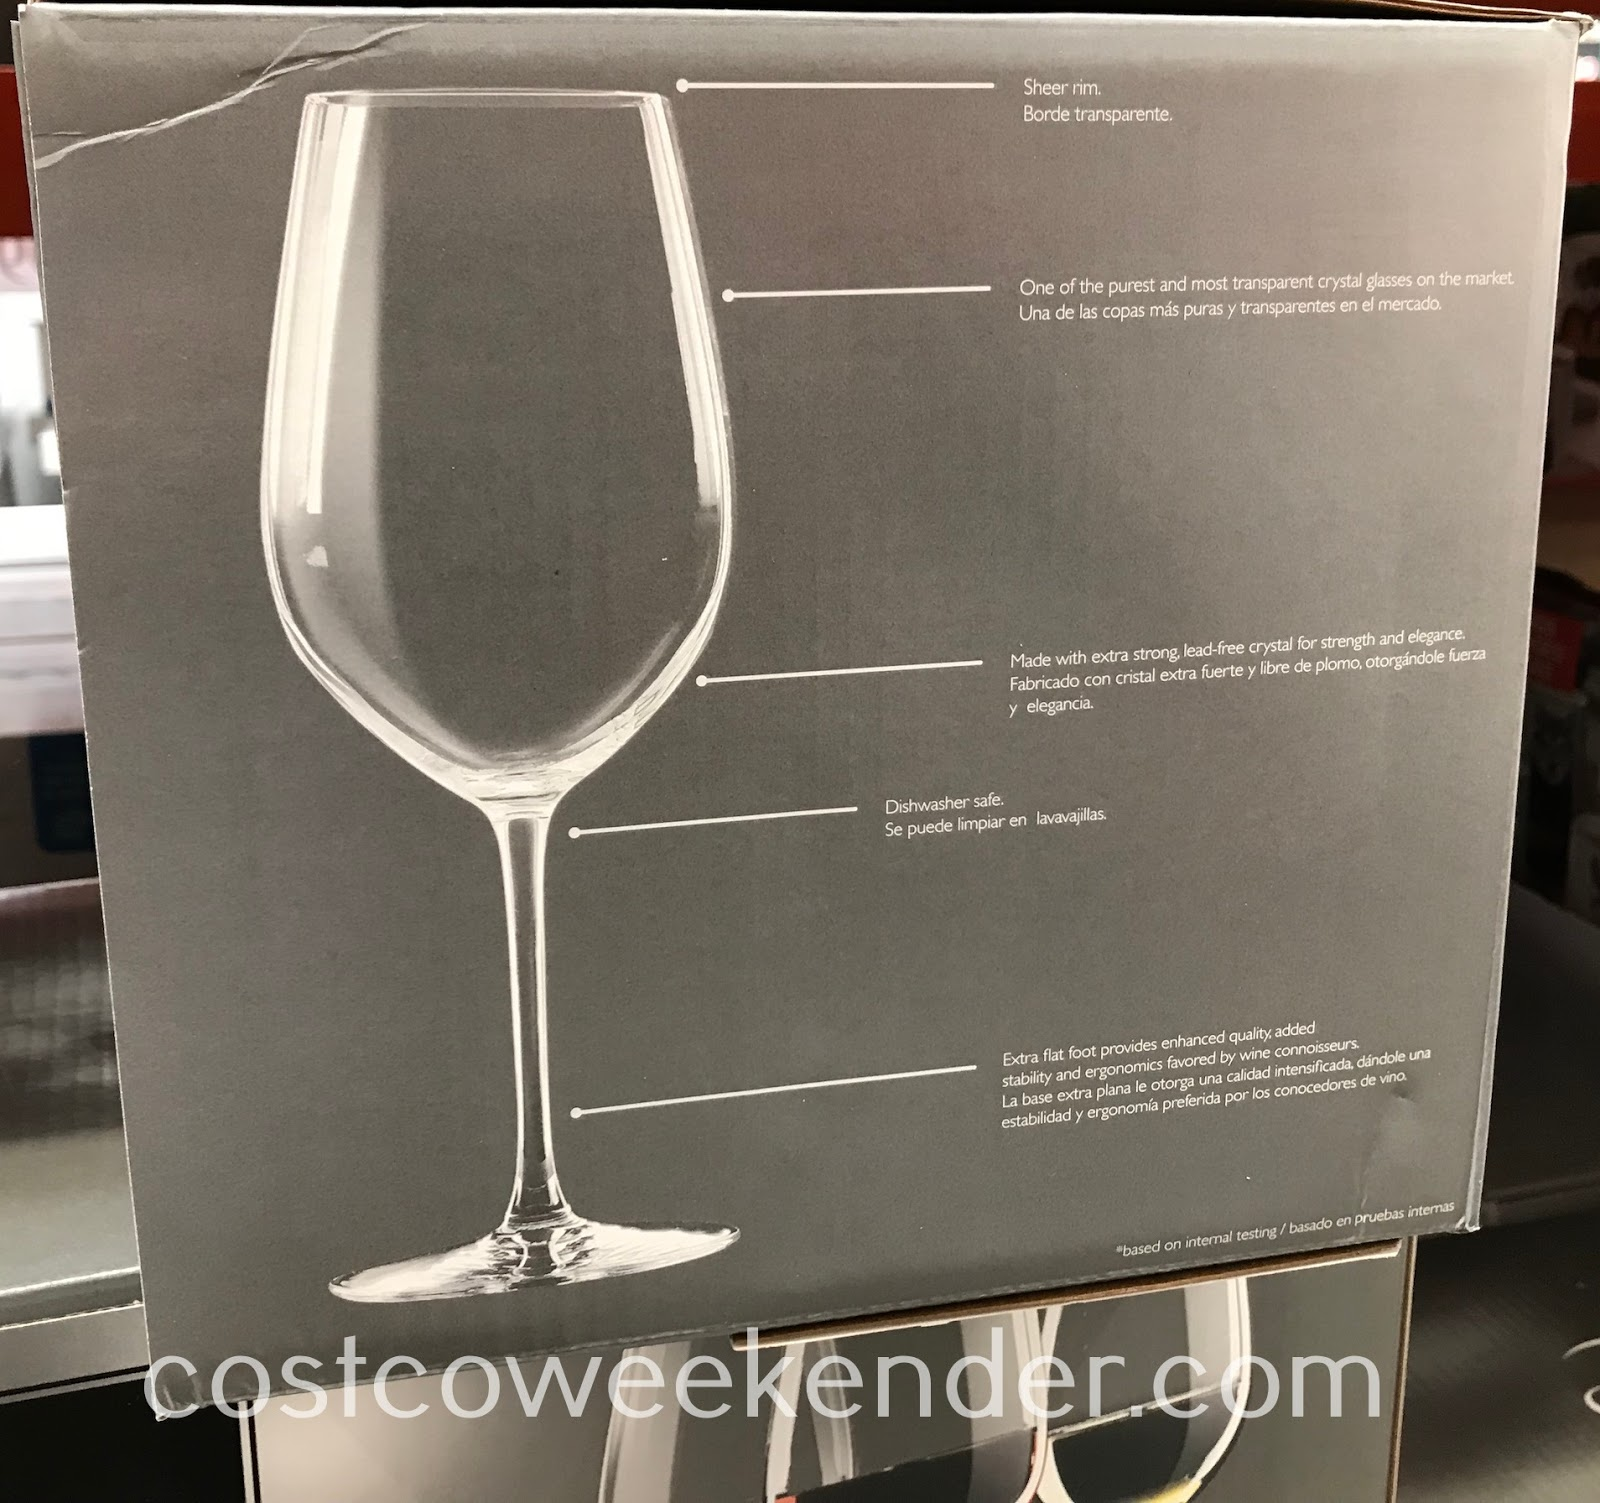 Costco 1330777 - Any wine lover would love Chef & Sommelier Crystal Wine Glasses